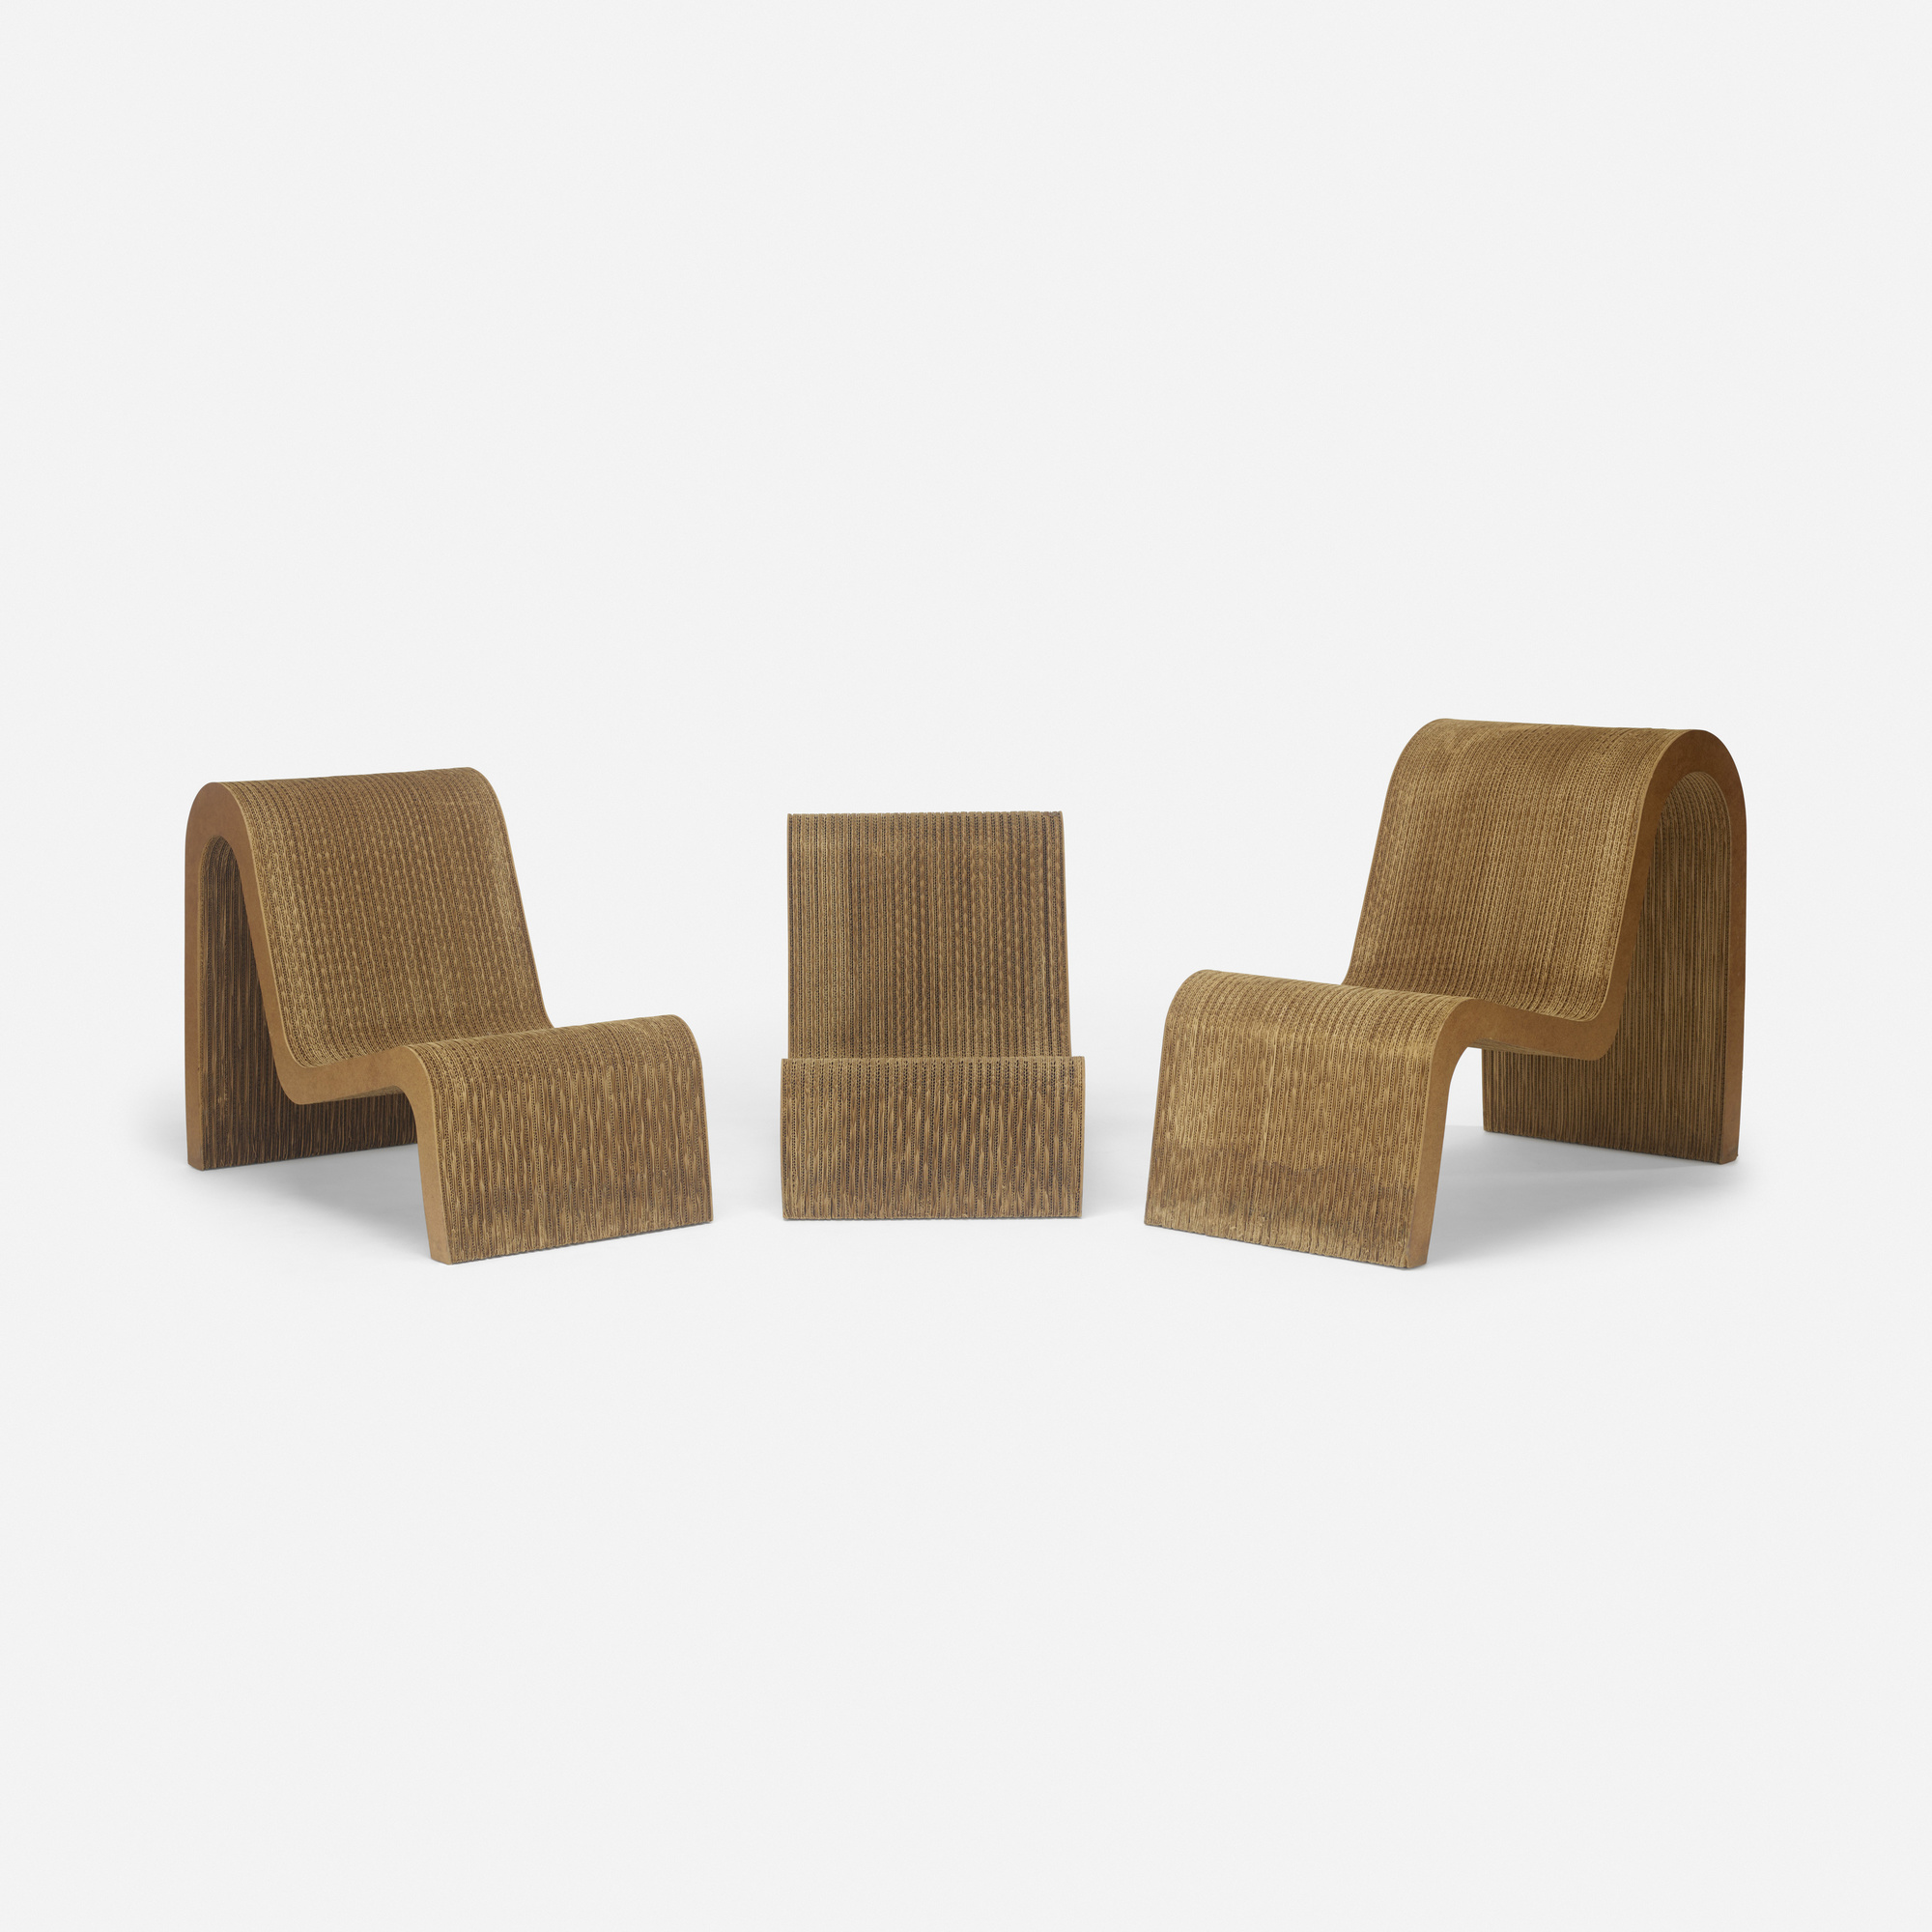 421: Frank Gehry / nesting chairs, set of three (2 of 3)